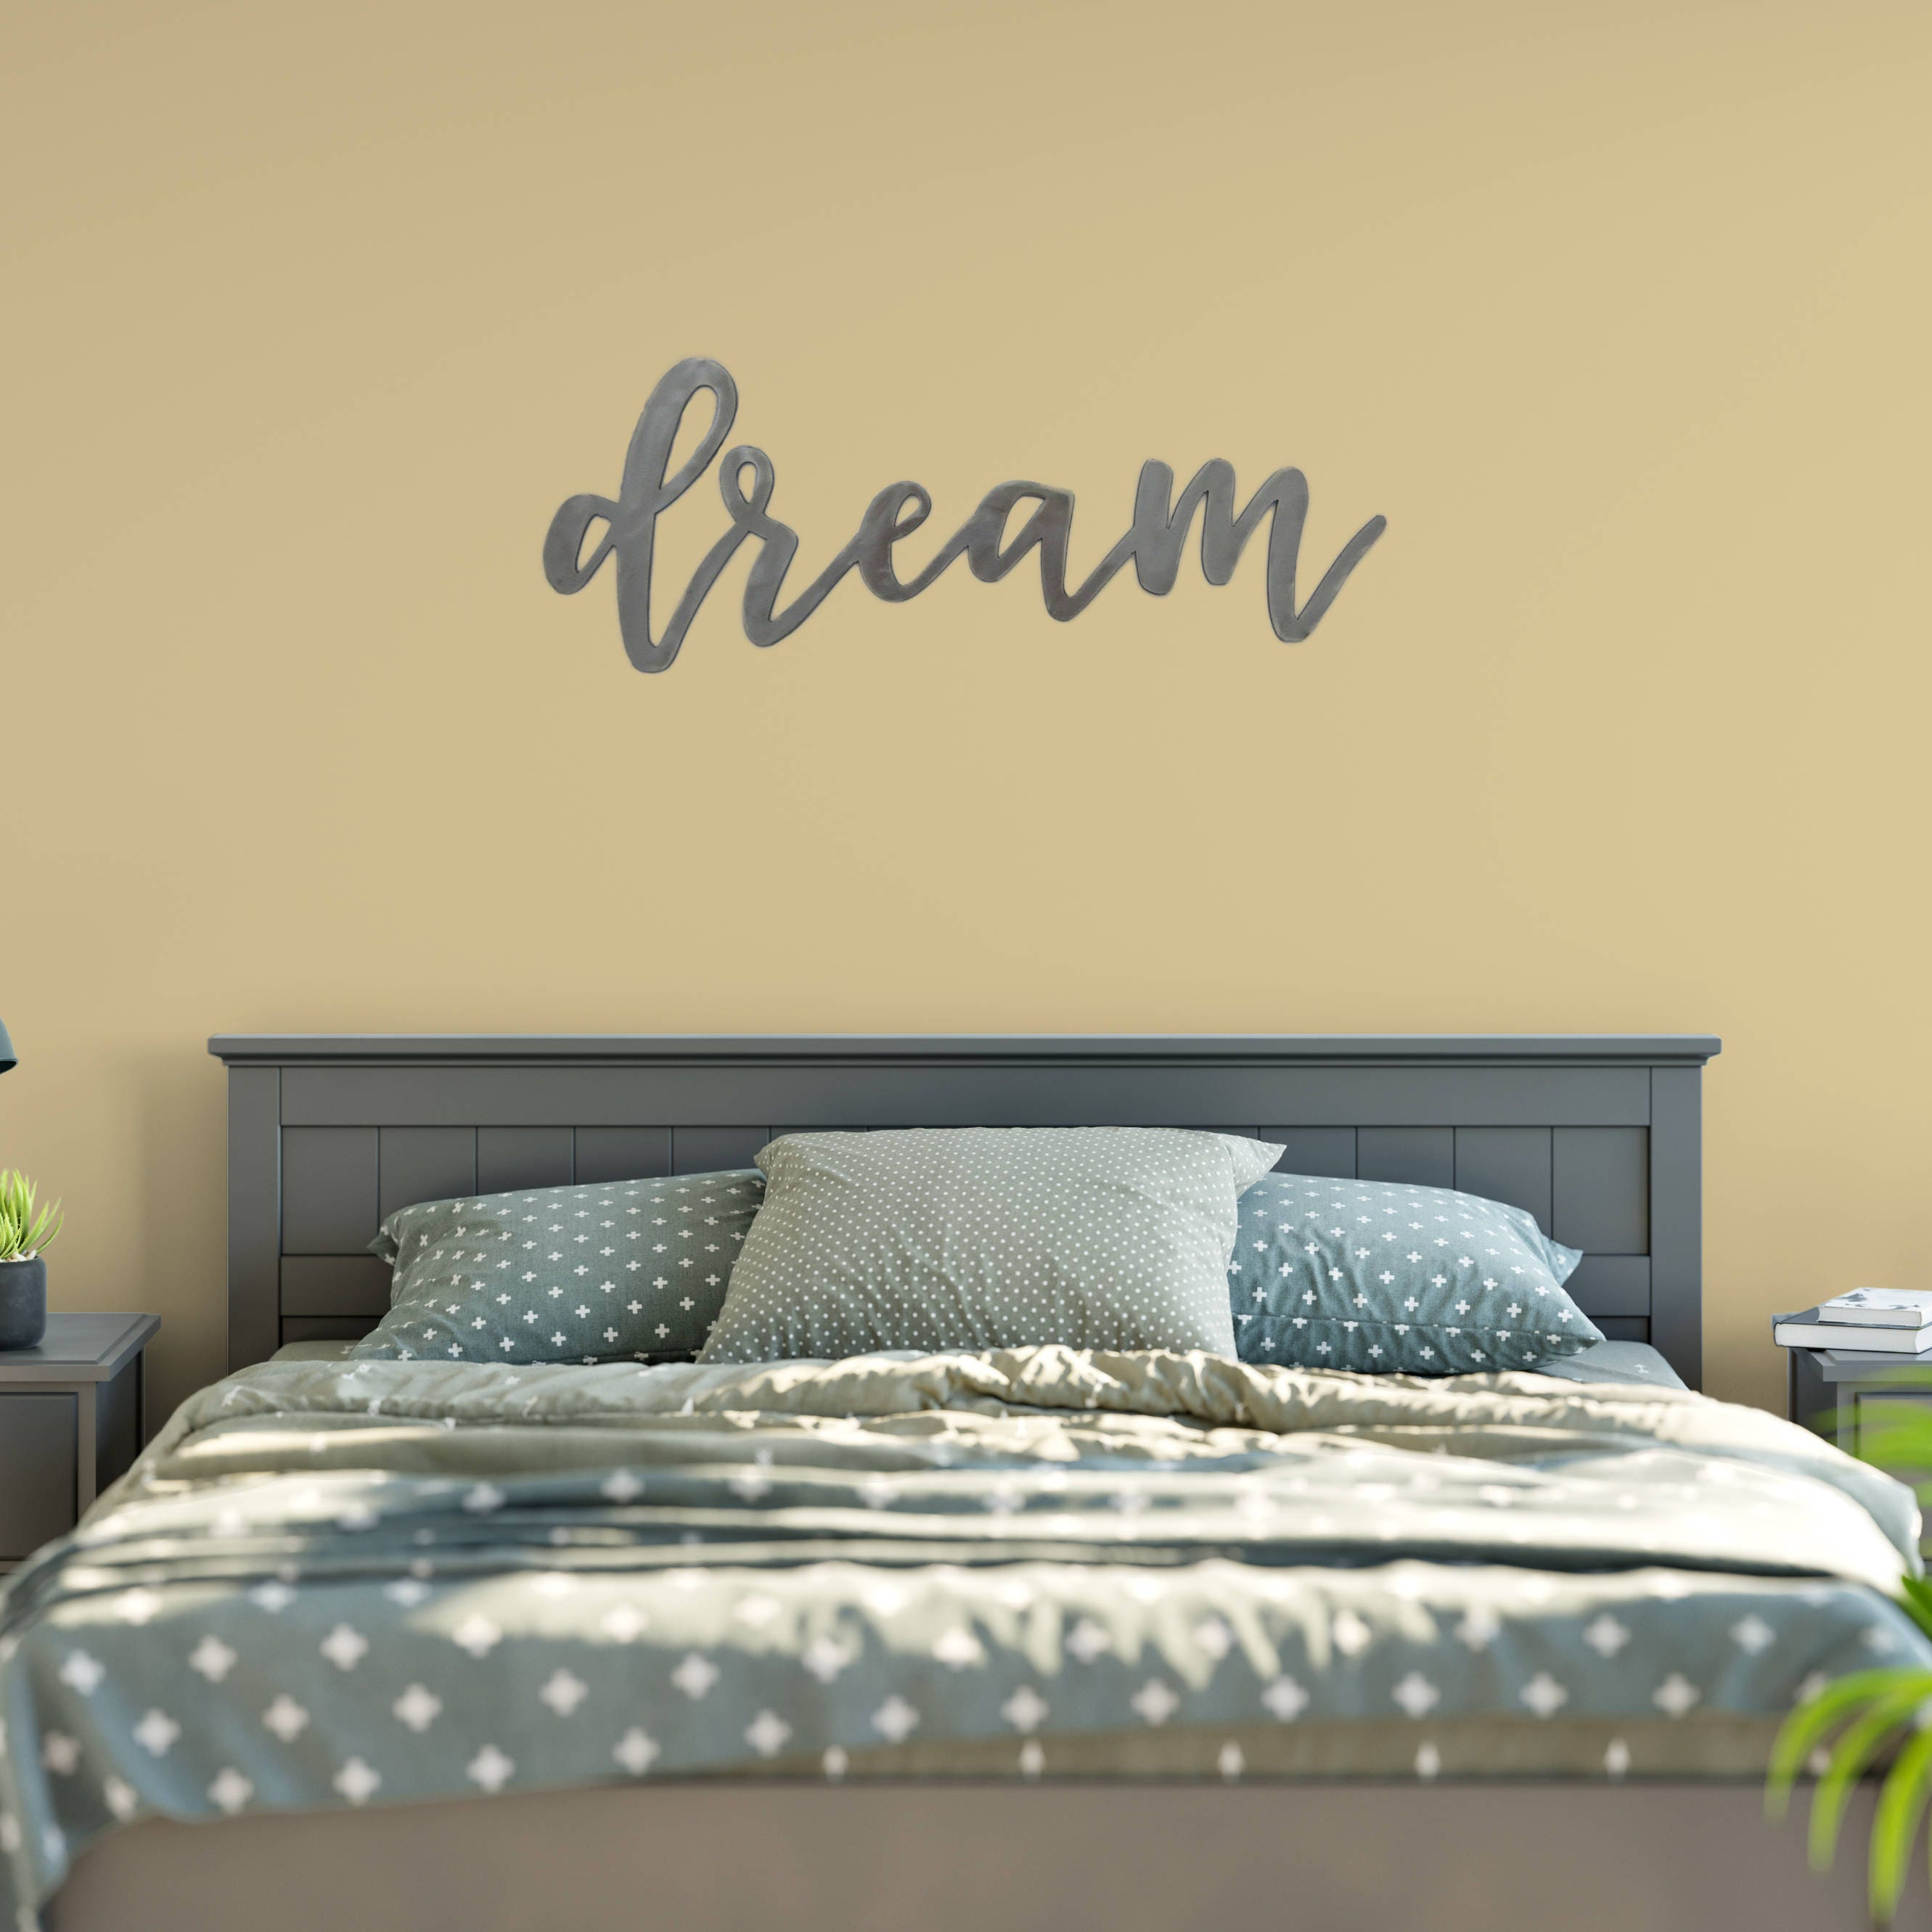 Dream Wall Decor Images - home design wall stickers